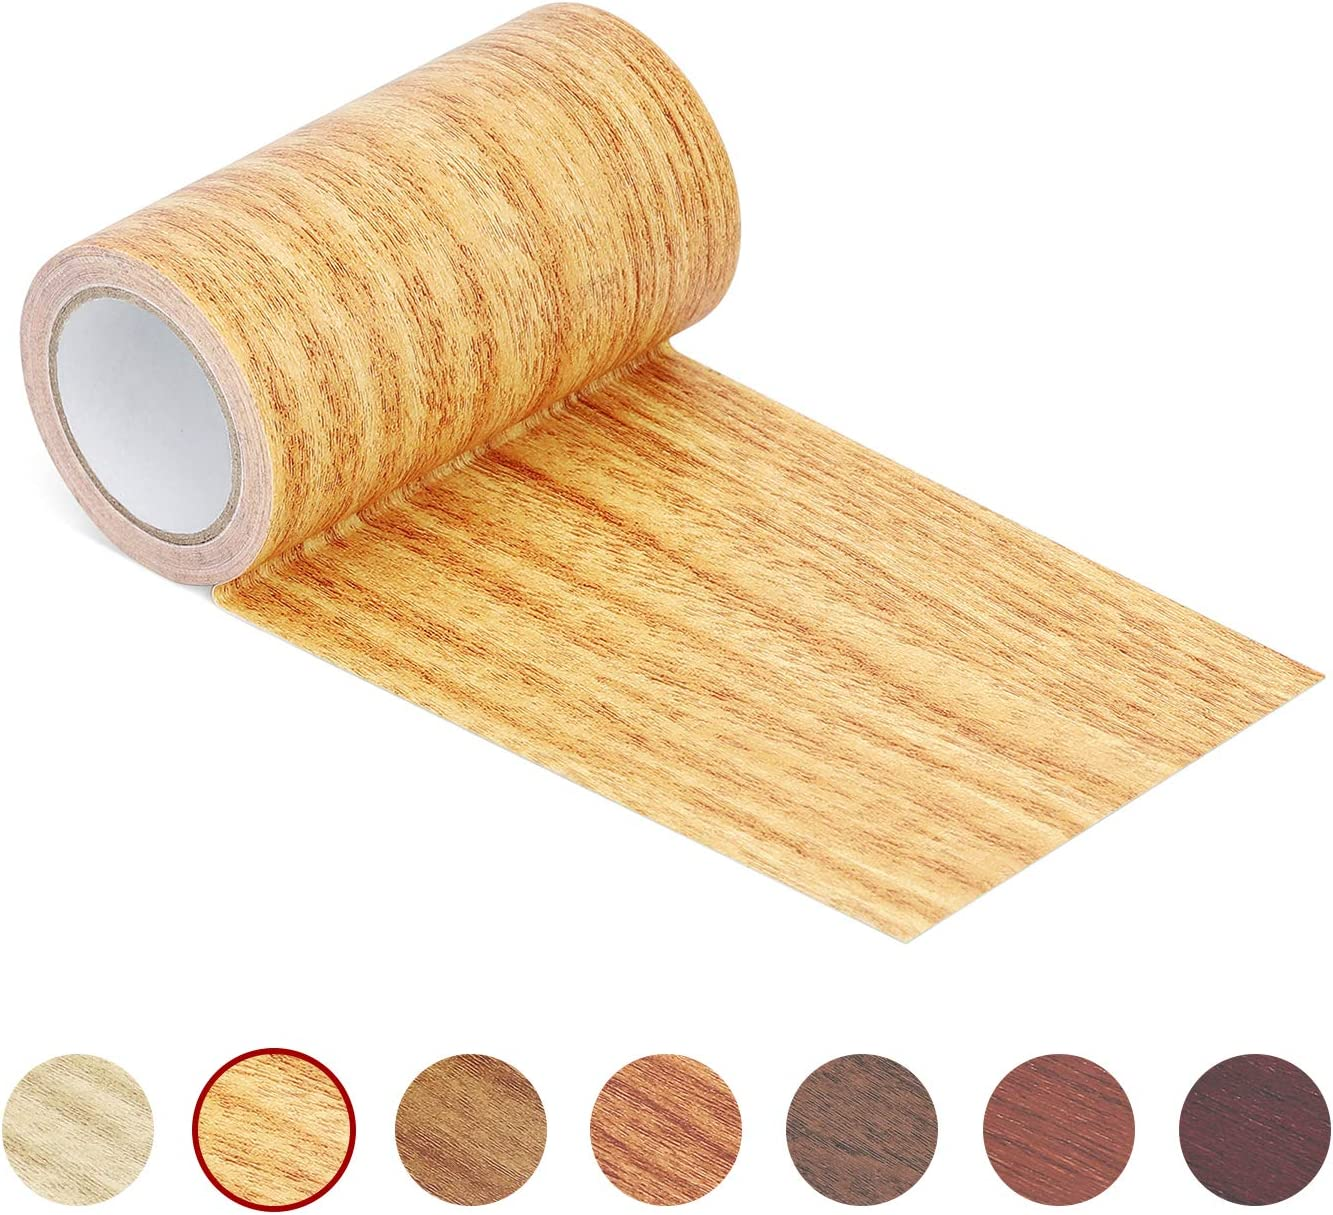 "Repair Tape Patch 2.4"" X15' Wood Textured Adhesive for Door Floor Table and Chair(Natural Oak)"